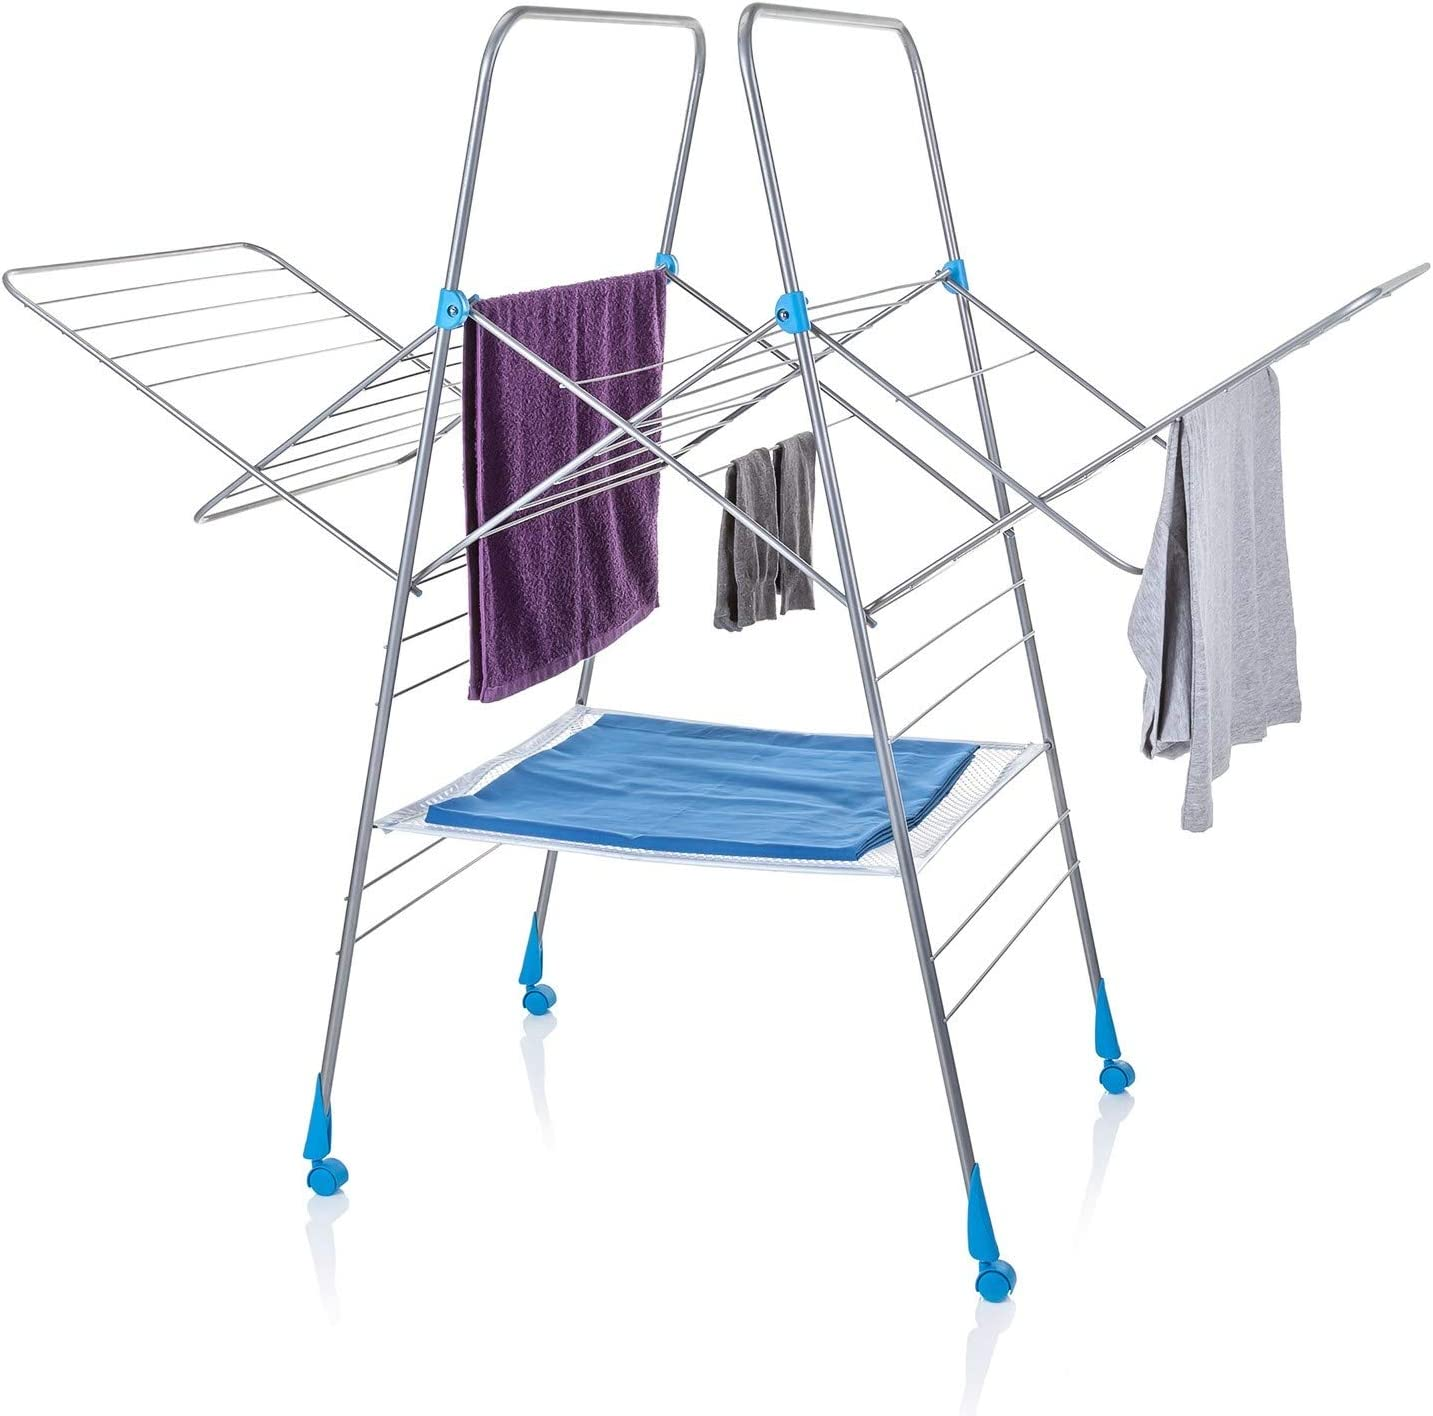 Minky Multidry Clothes Airer with 25 m of Drying Space, Metal, White, 25m